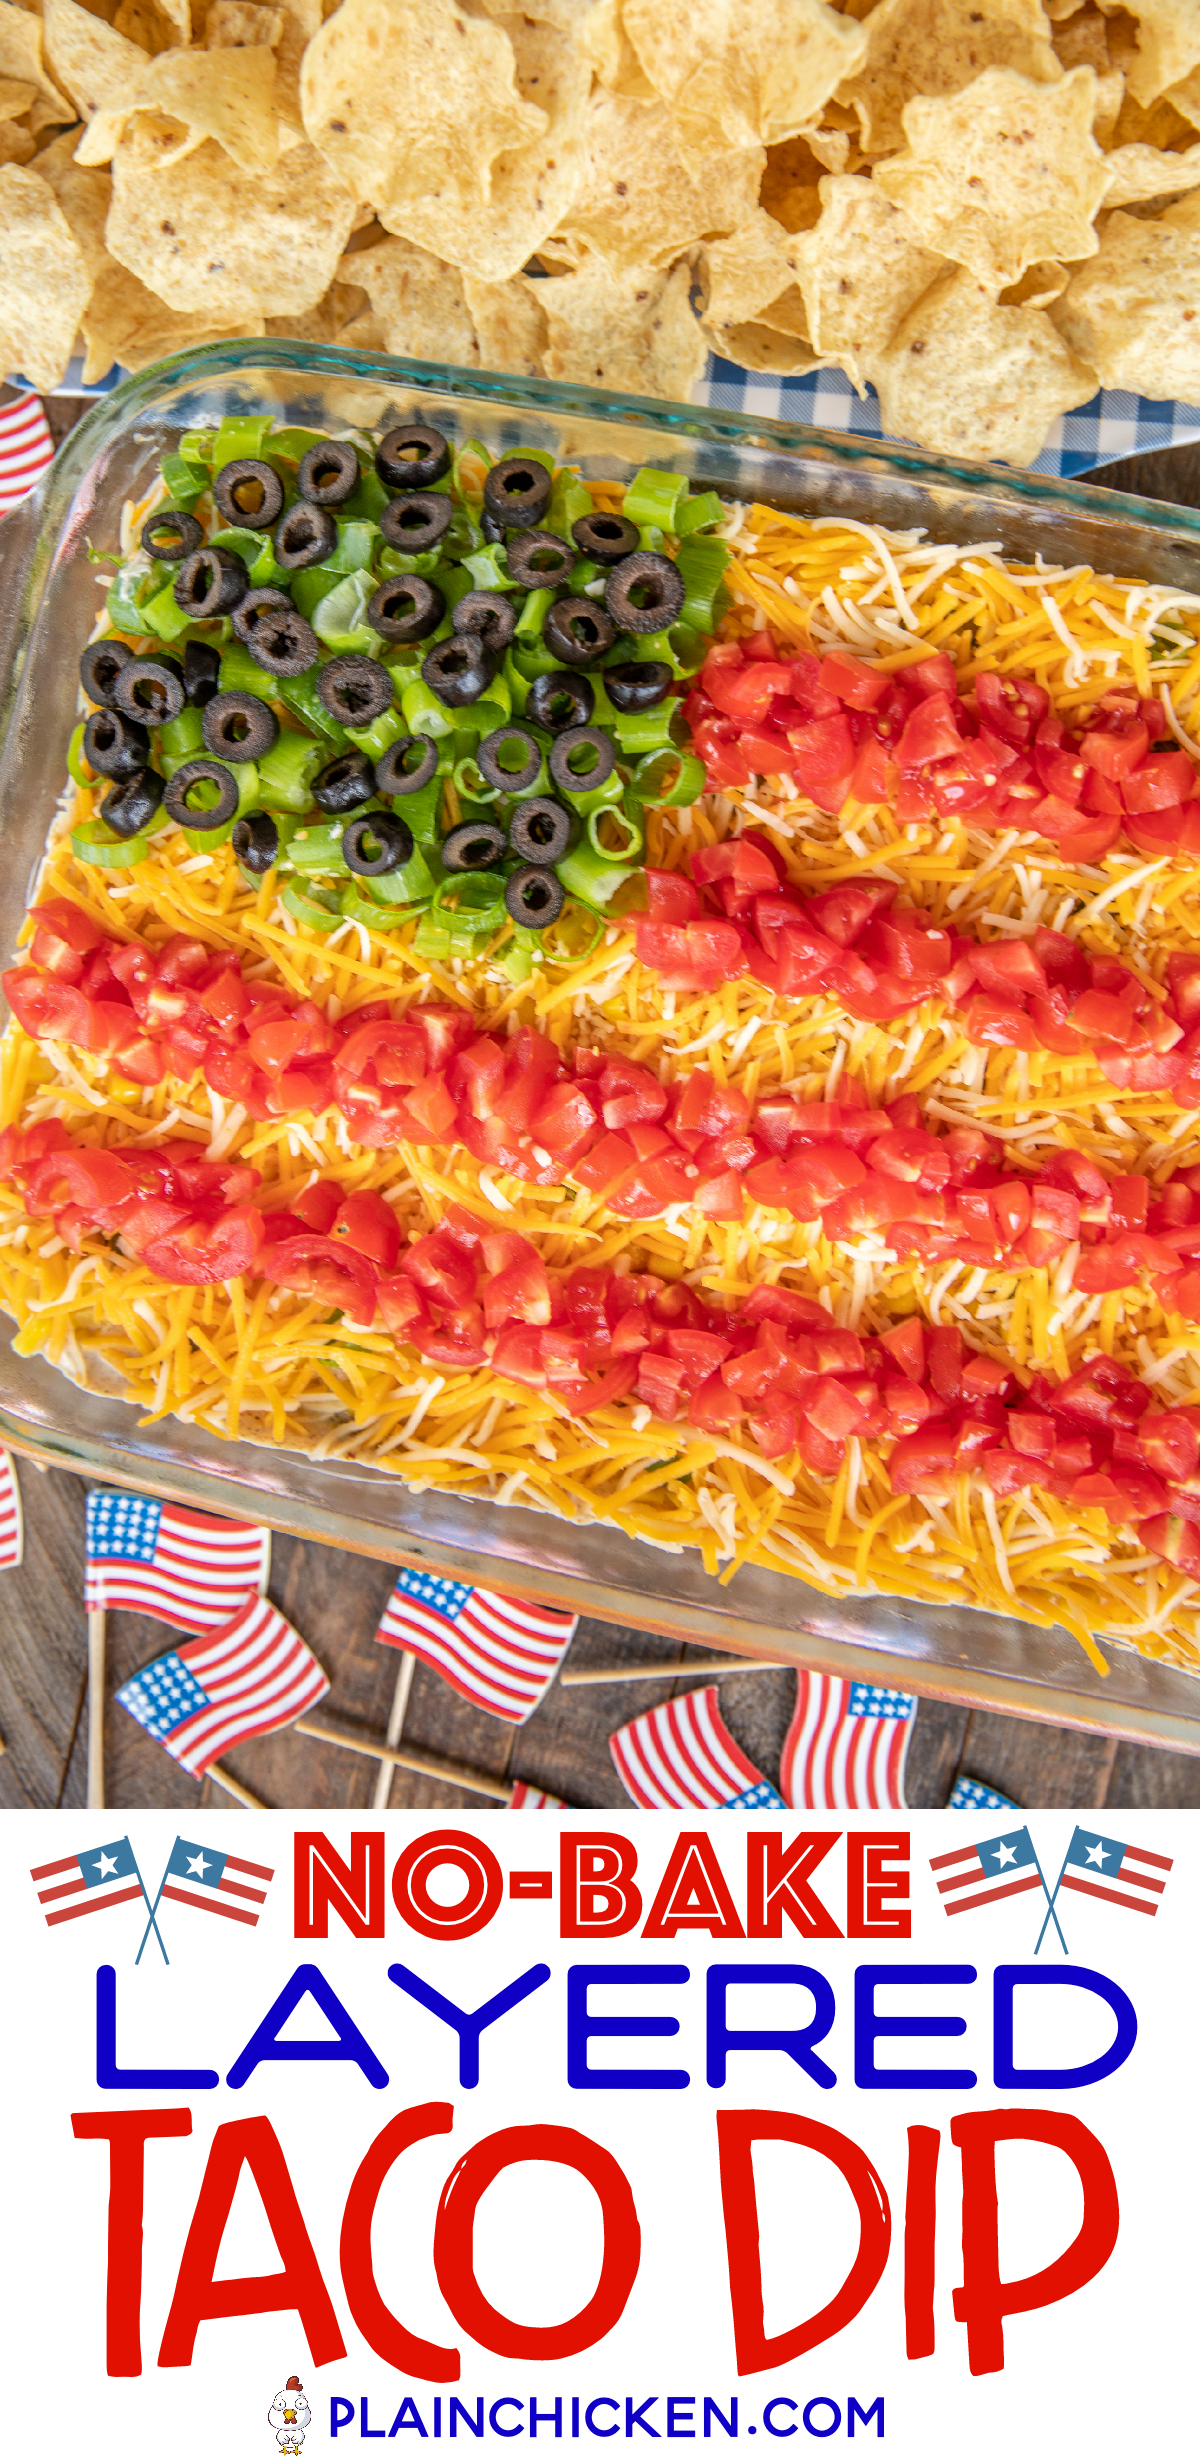 No-Bake 7 Layer Taco Dip in Flag Shape Recipe - such a fun and patriotic dip for Memorial Day, 4th of July, and Labor Day! Can just layer the dip ingredients if not serving for a patriotic holiday. Refried beans, diced green chiles, guacamole, taco seasoning, sour cream, corn, cheese, tomatoes, green onions, and olives. Can add ground beef, chicken, lettuce, onions, bell peppers - whatever you like! Make in advance and refrigerate for later. 7 Layer Taco Dip in Flag Shape Recipe - such a fun and patriotic dip for Memorial Day, 4th of July, and Labor Day! Can just layer the dip ingredients if not serving for a patriotic holiday. Refried beans, diced green chiles, guacamole, taco seasoning, sour cream, corn, cheese, tomatoes, green onions, and olives. Can add ground b...